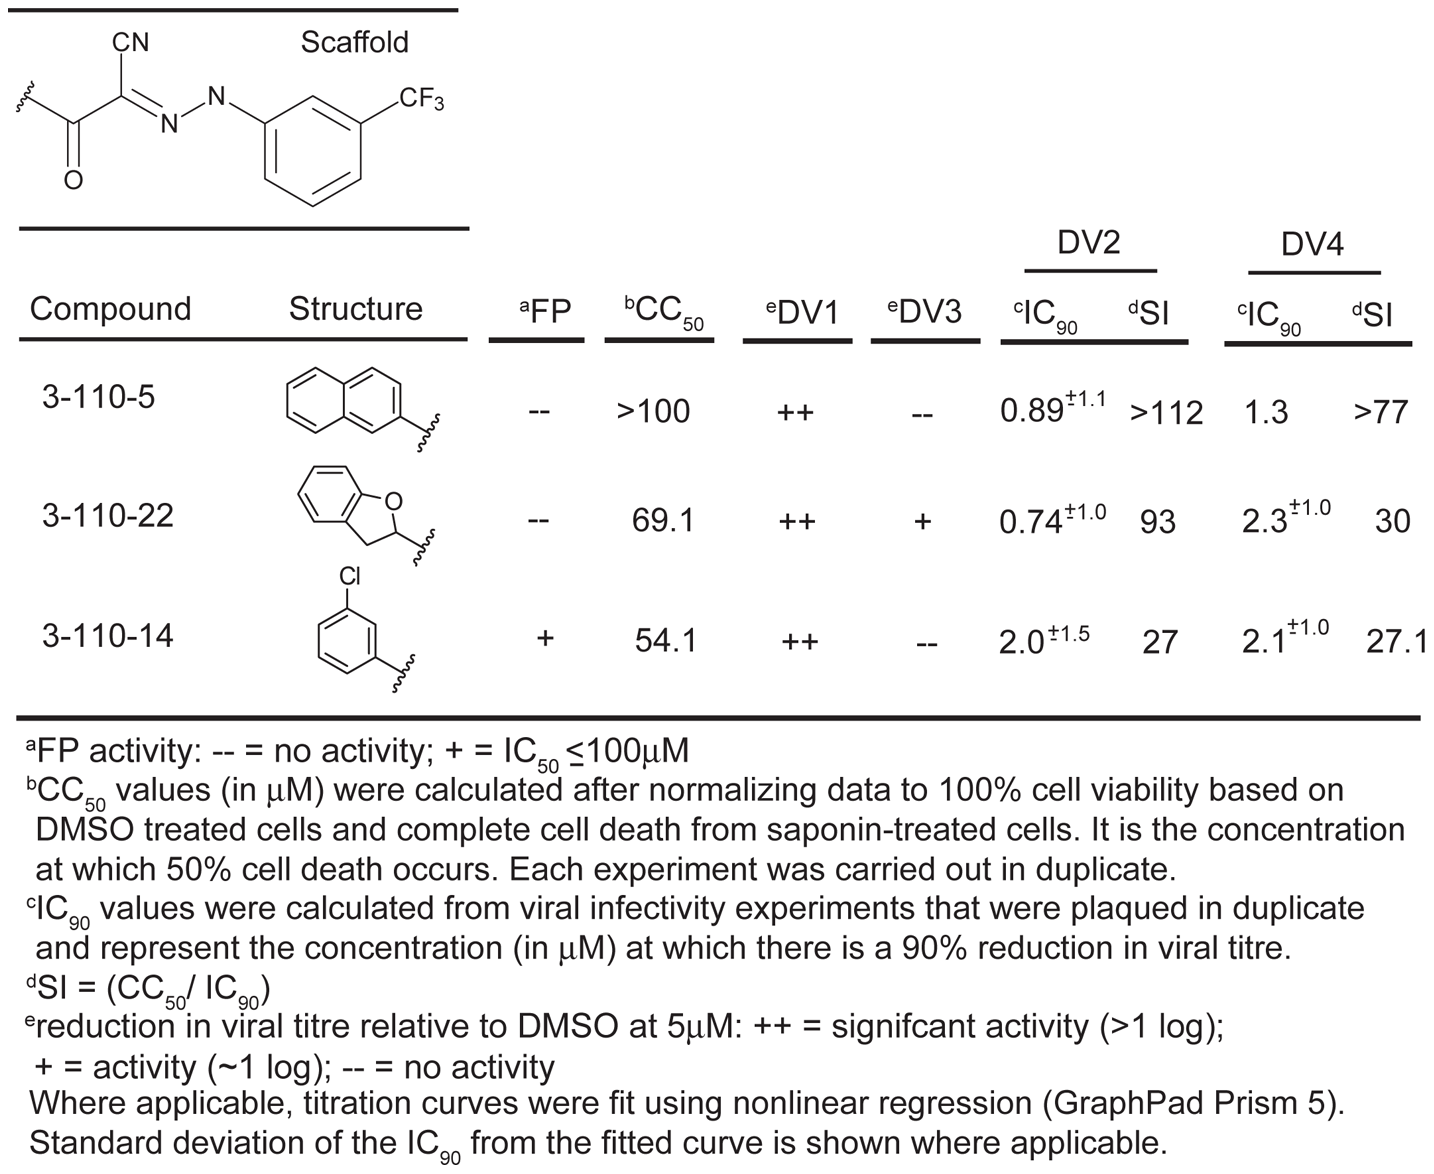 Biochemical, cytotoxicity and antiviral summary of selected compounds from the 3-110 series.